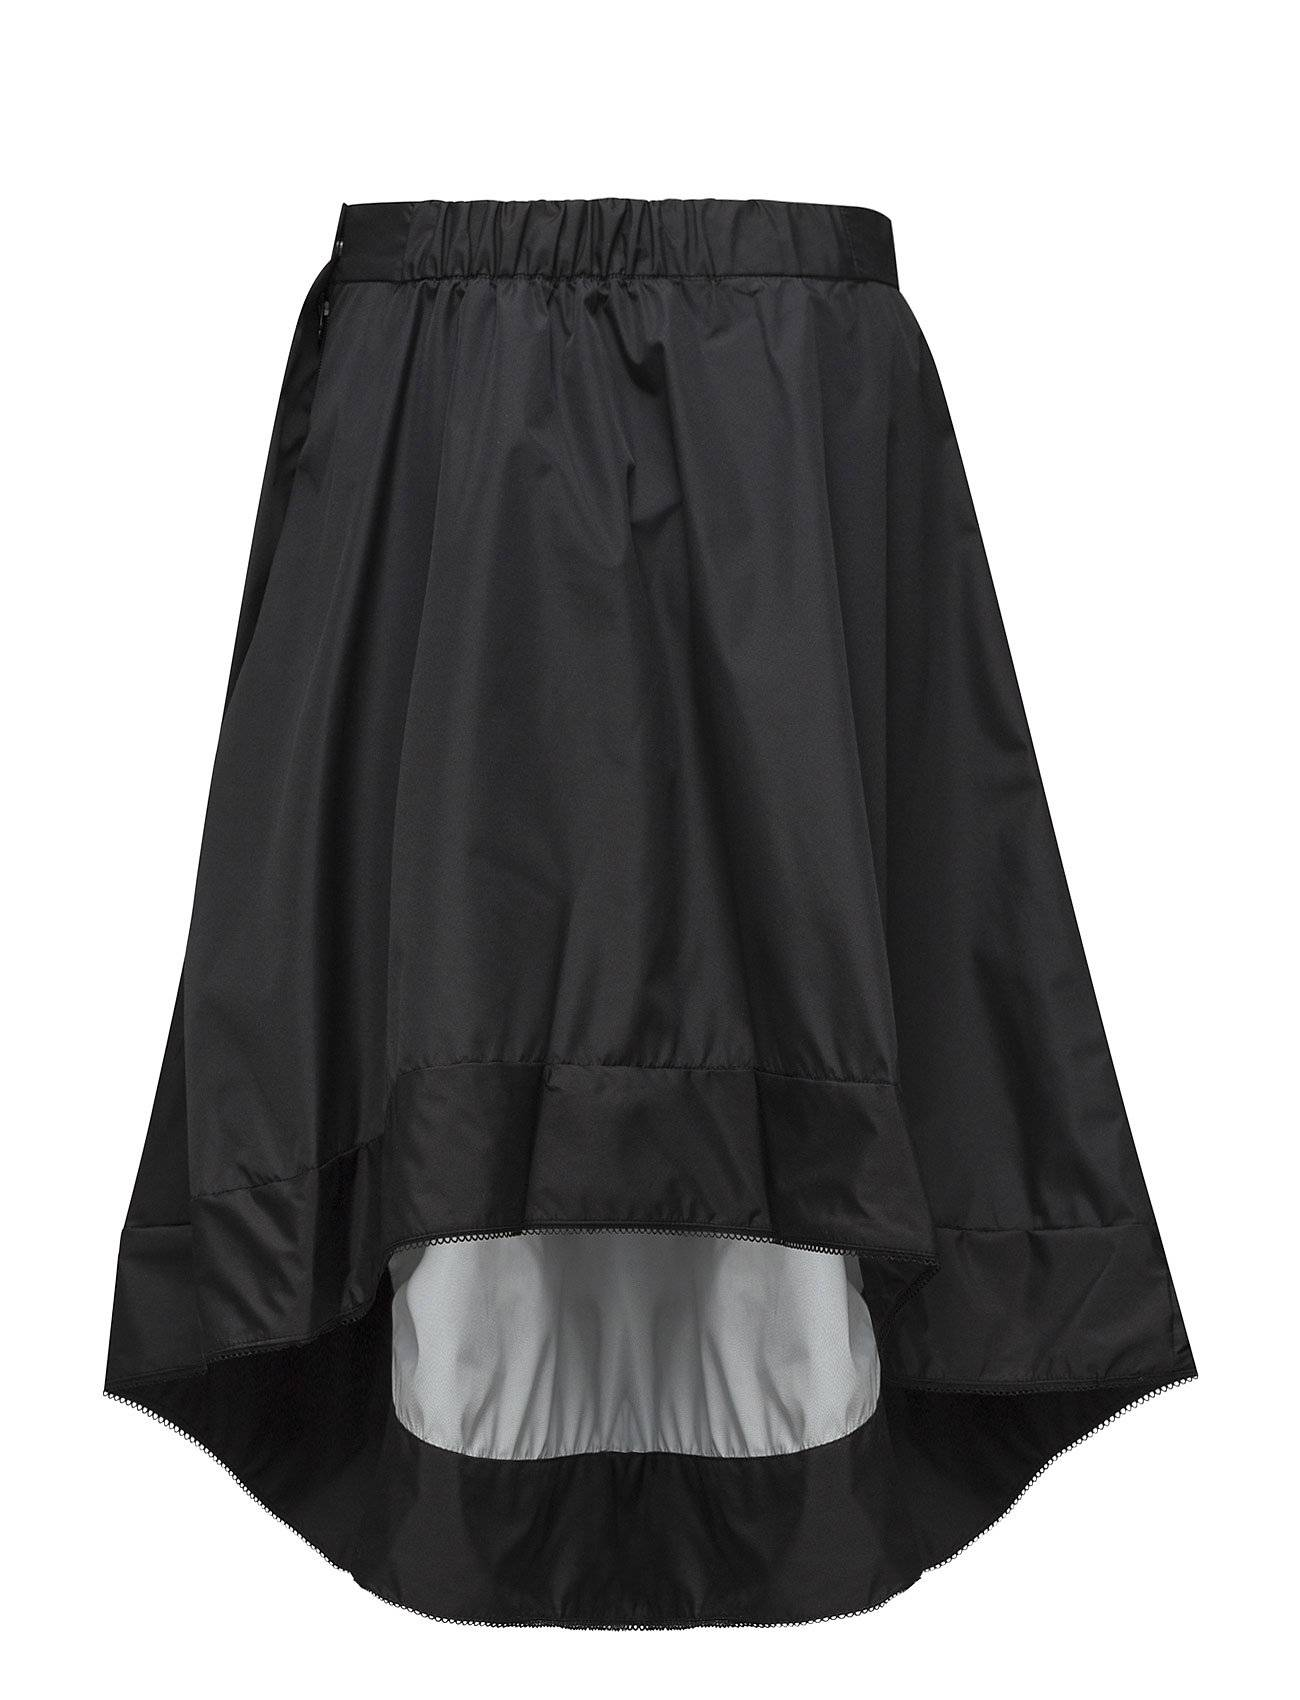 Ilse Jacobsen by Emma Jorn Womens Rain Skirt